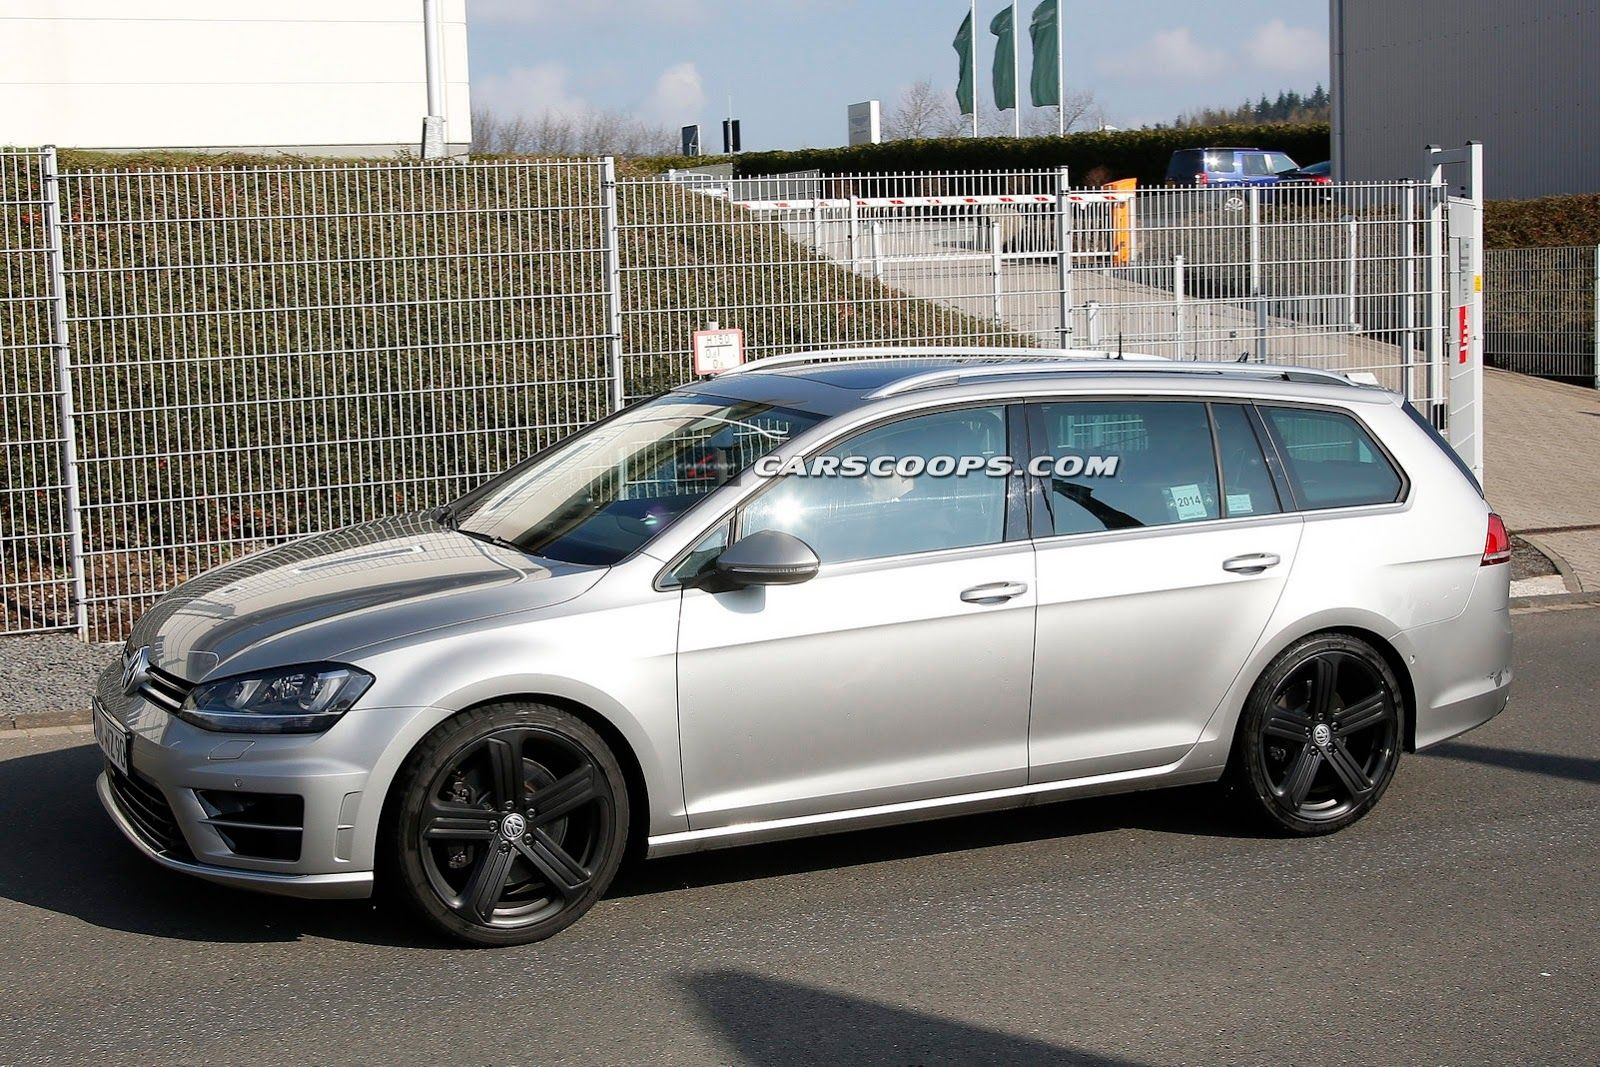 Vw Spied Testing What Looks Like Golf R Estate Could It Spawn A Jetta Sportwagen R Carscoops Volkswagen Golf R Volkswagen Volkswagen Golf